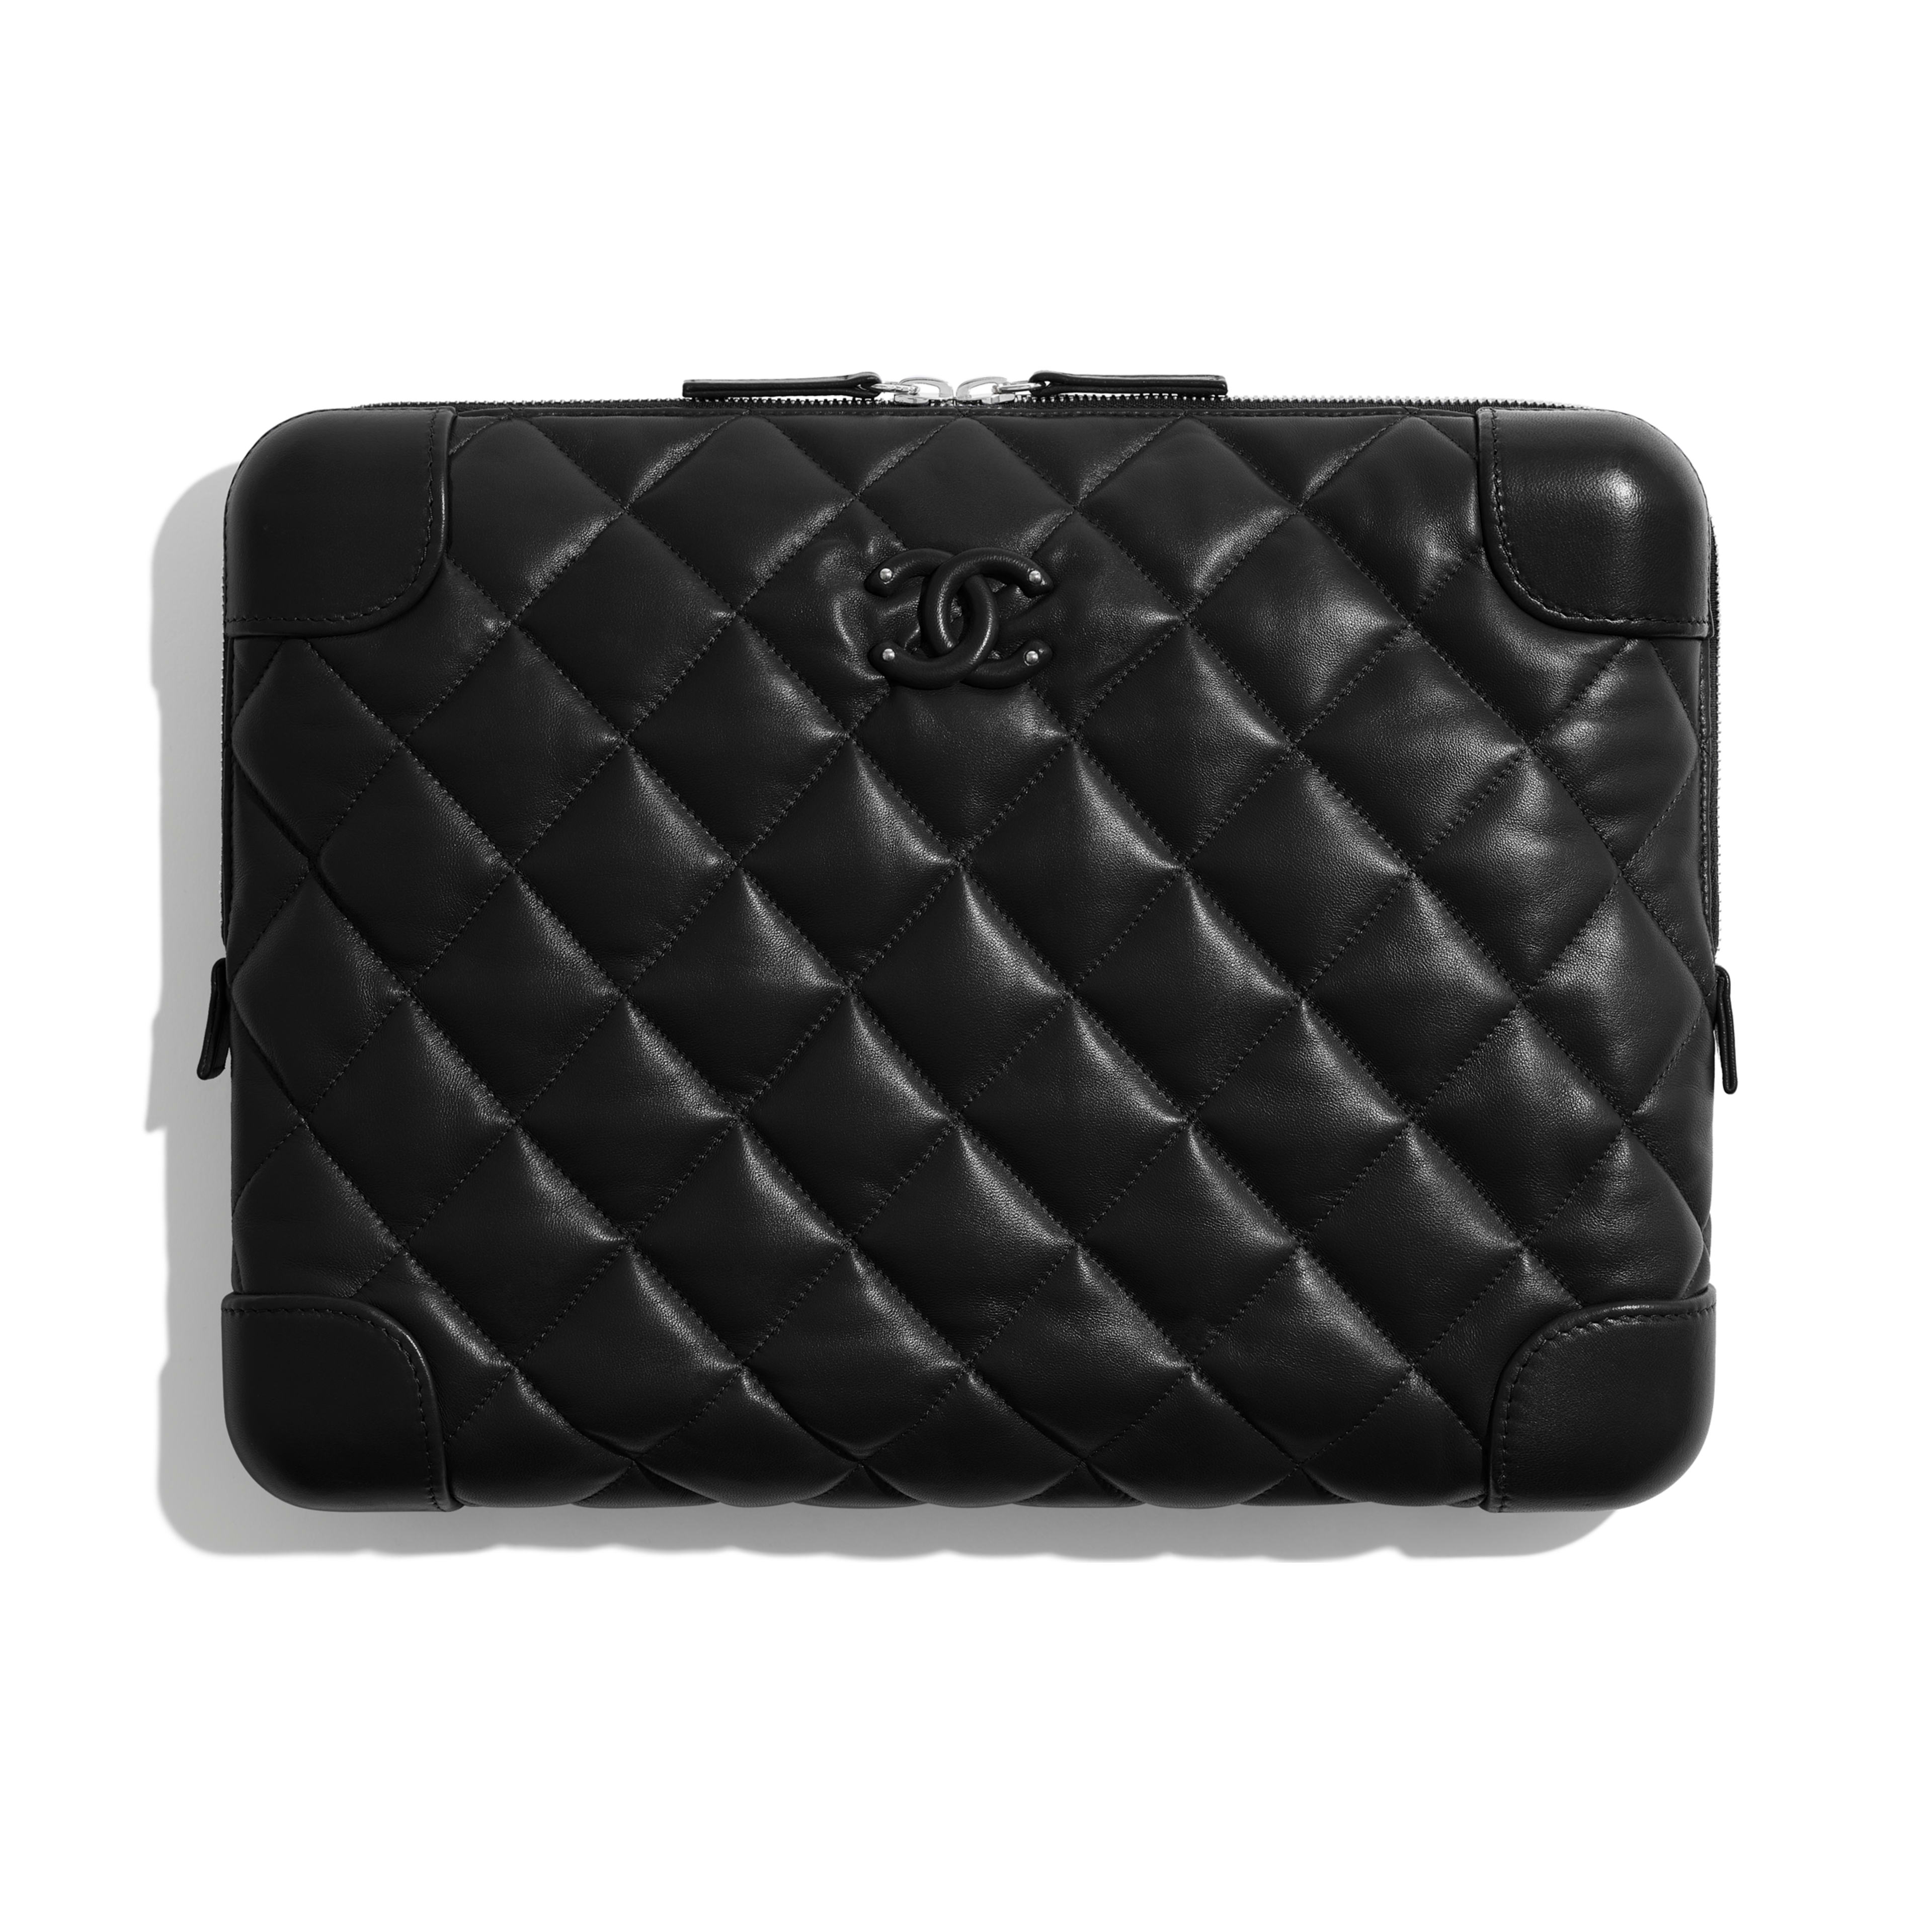 Large Clutch - Black - Lambskin - Default view - see full sized version